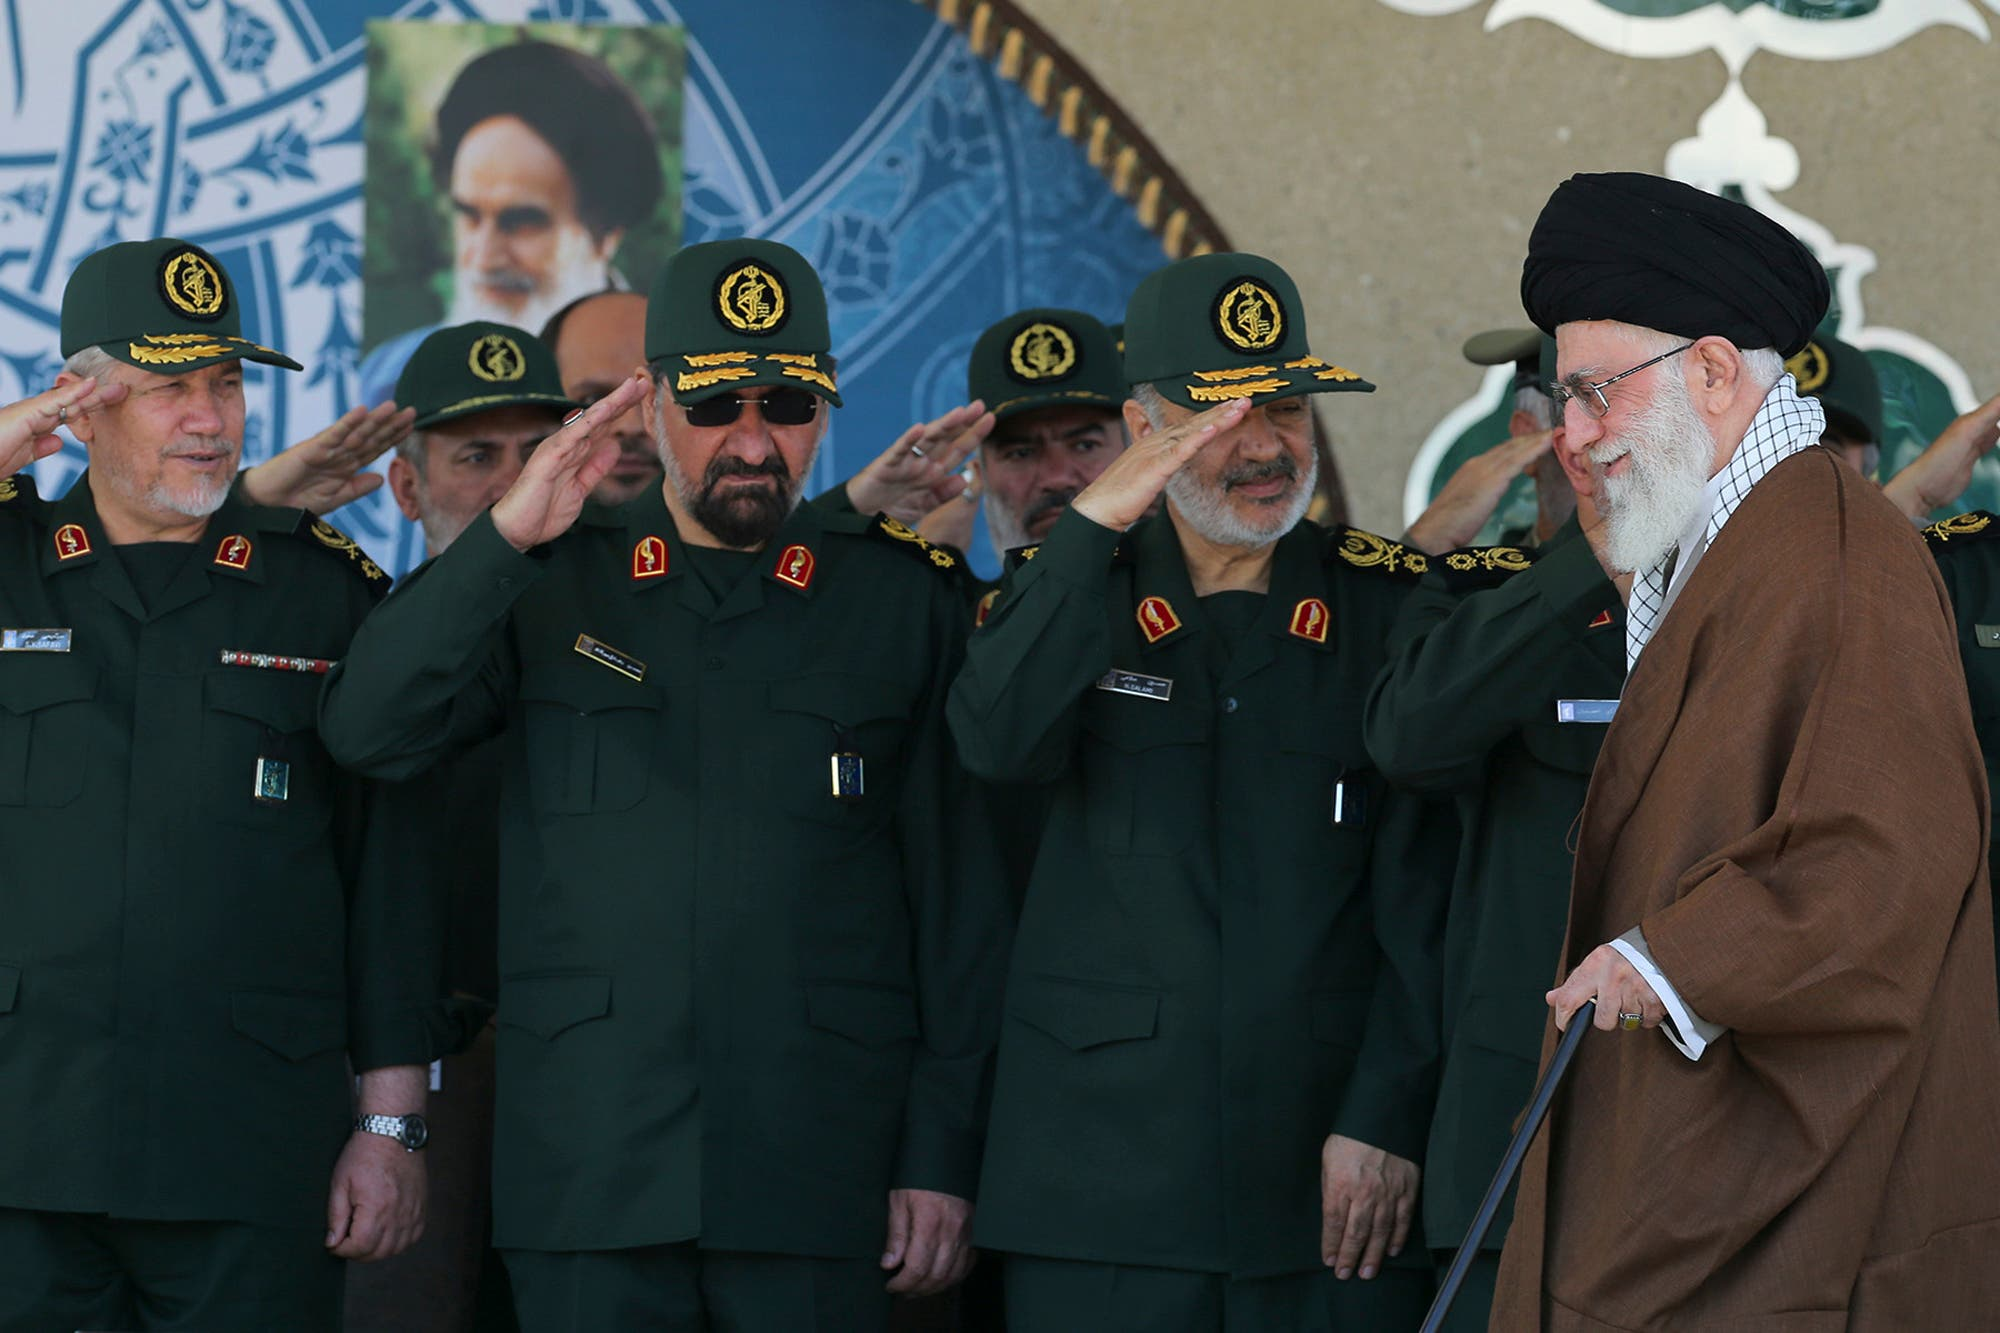 Supreme Leader Ayatollah Ali Khamenei, right, arrives at a Revolutionary Guard ceremony, while deputy commander of the Revolutionary Guard, Hossein Salami, second right, another other former commanders salute him in Tehran, Iran. (AP)